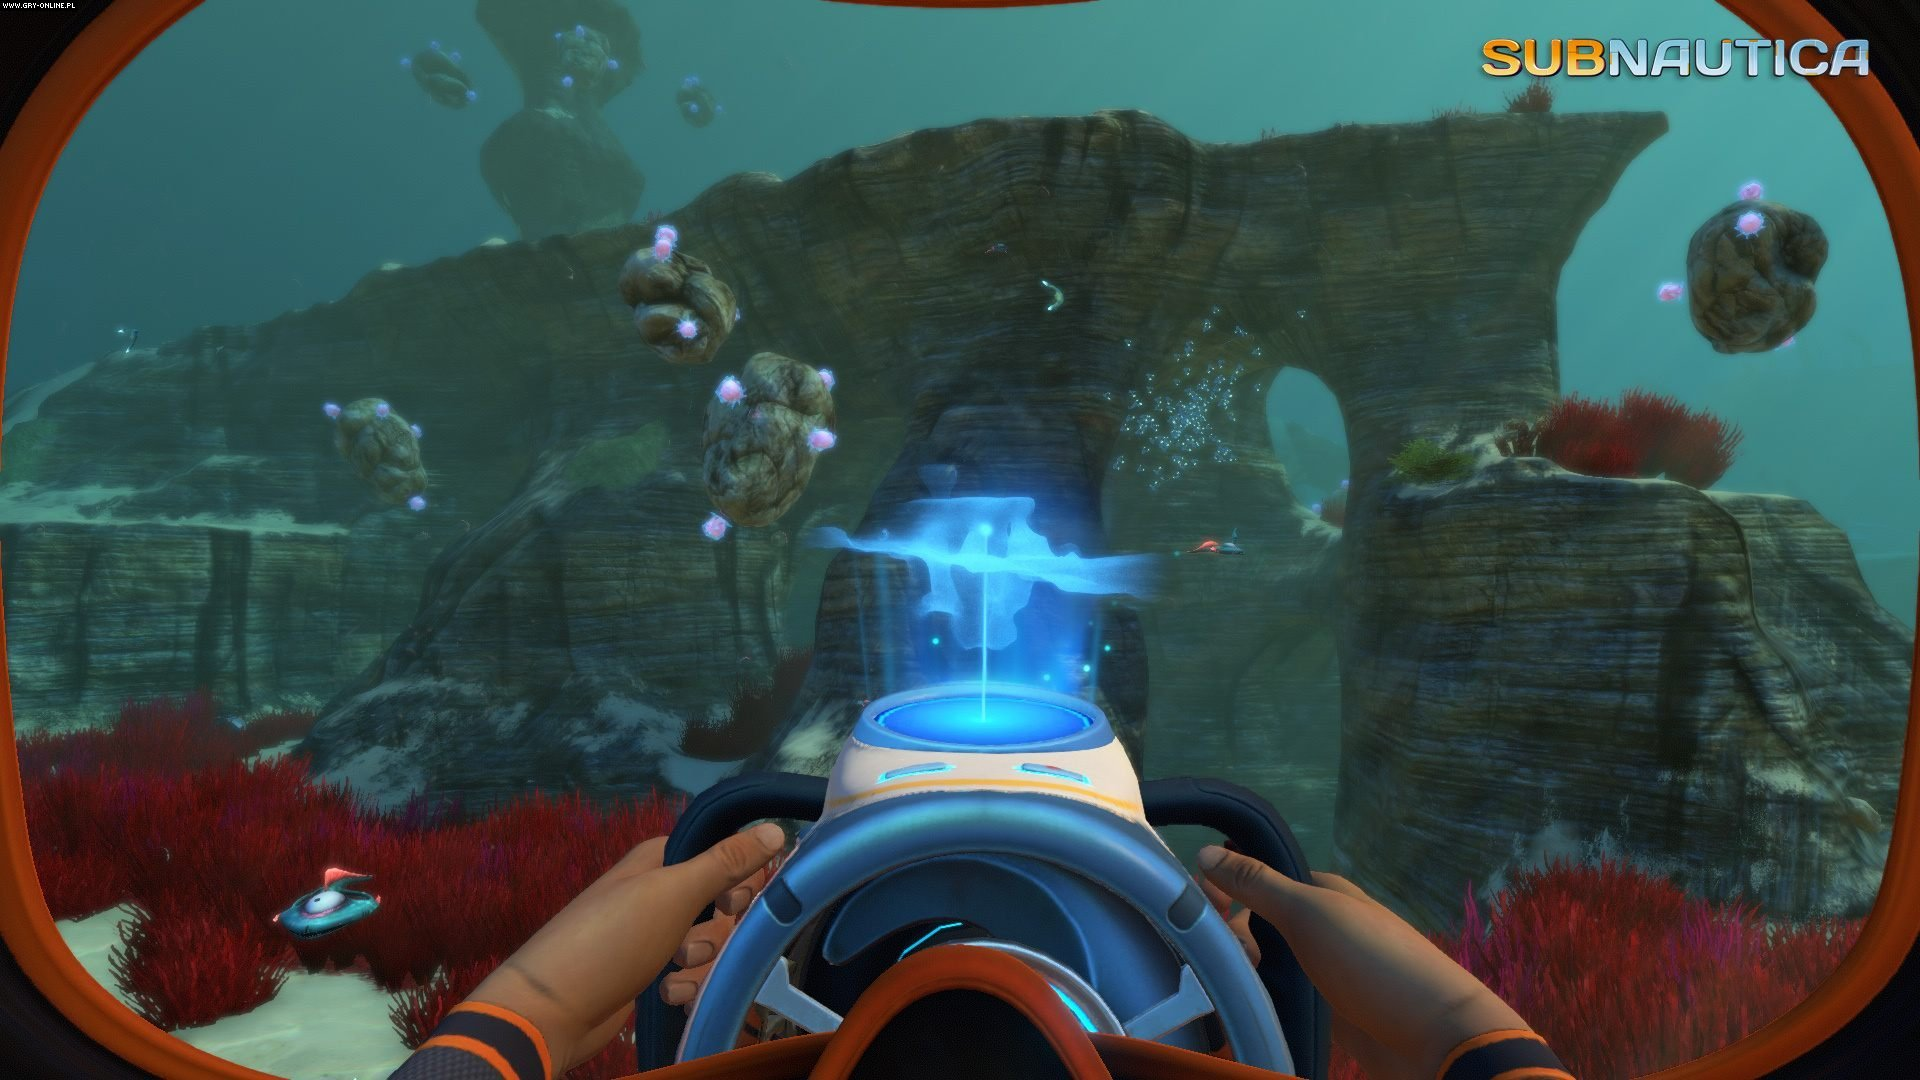 Subnautica PC, PS4, XONE Games Image 4/50, Unknown Worlds Entertainment